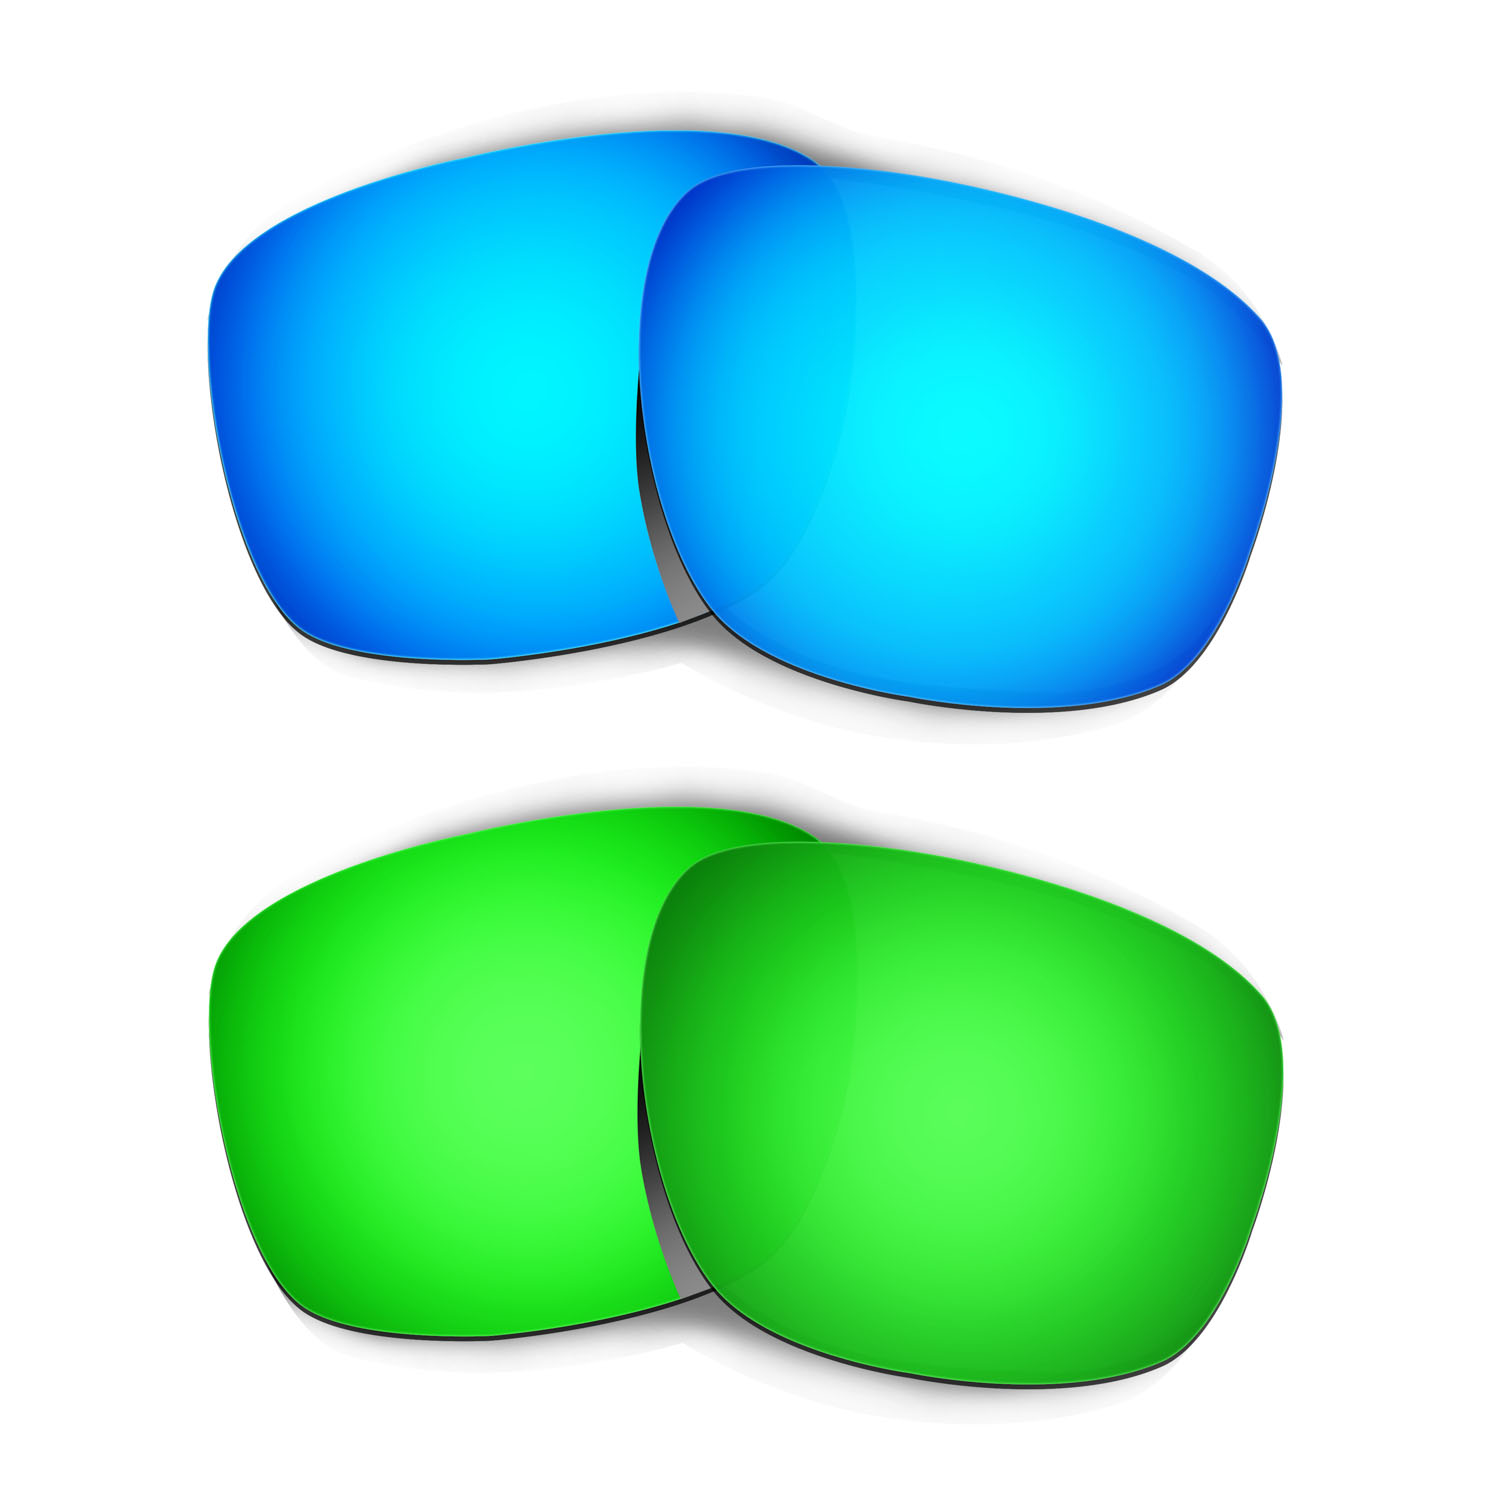 HKUCO For Sliver Sunglasses Replacement Polarized Lenses 2 Pairs - Blue & Green